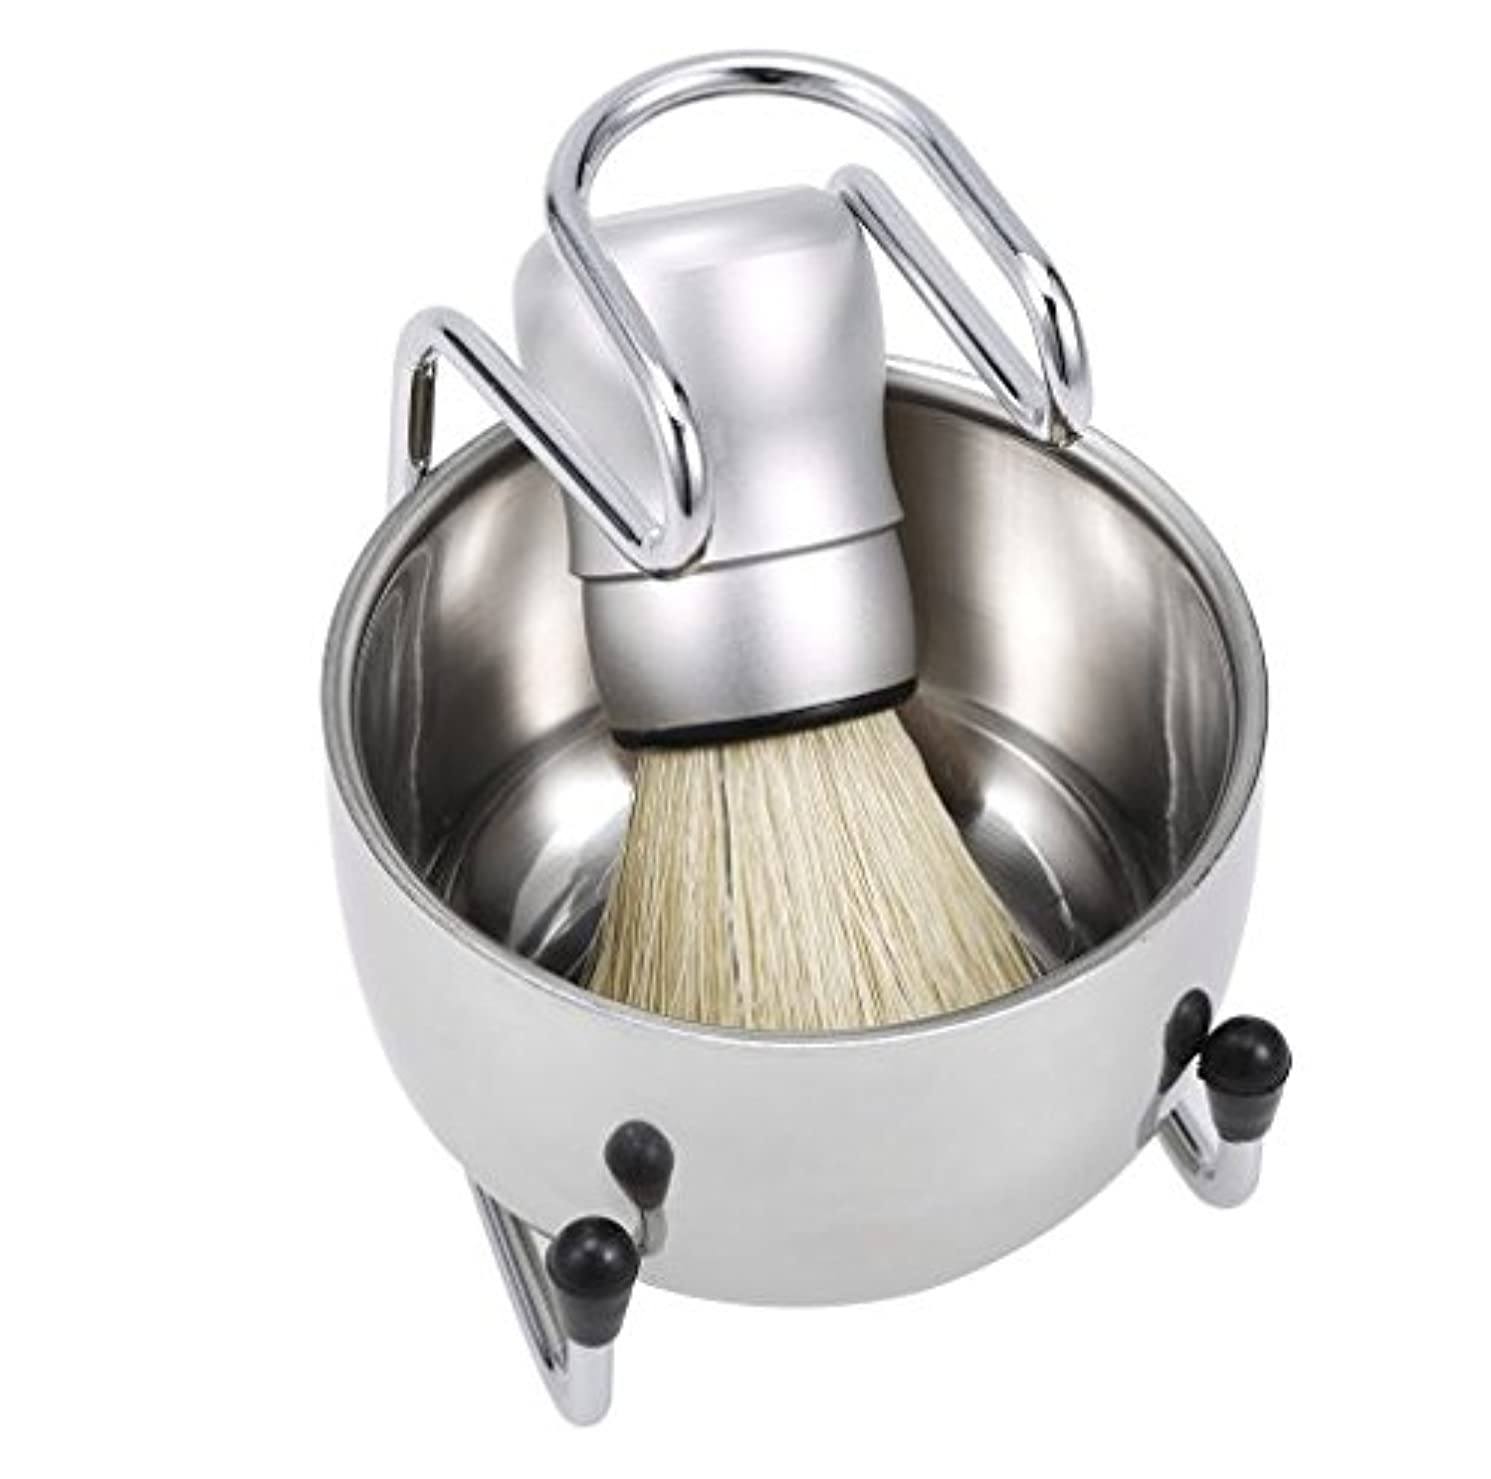 カートン星おじさん3 in 1 Men's Shaving Tools Set Well Polished Shaving Brush Soap Bowl Stand Holder Badger Hair Male Face Cleaning